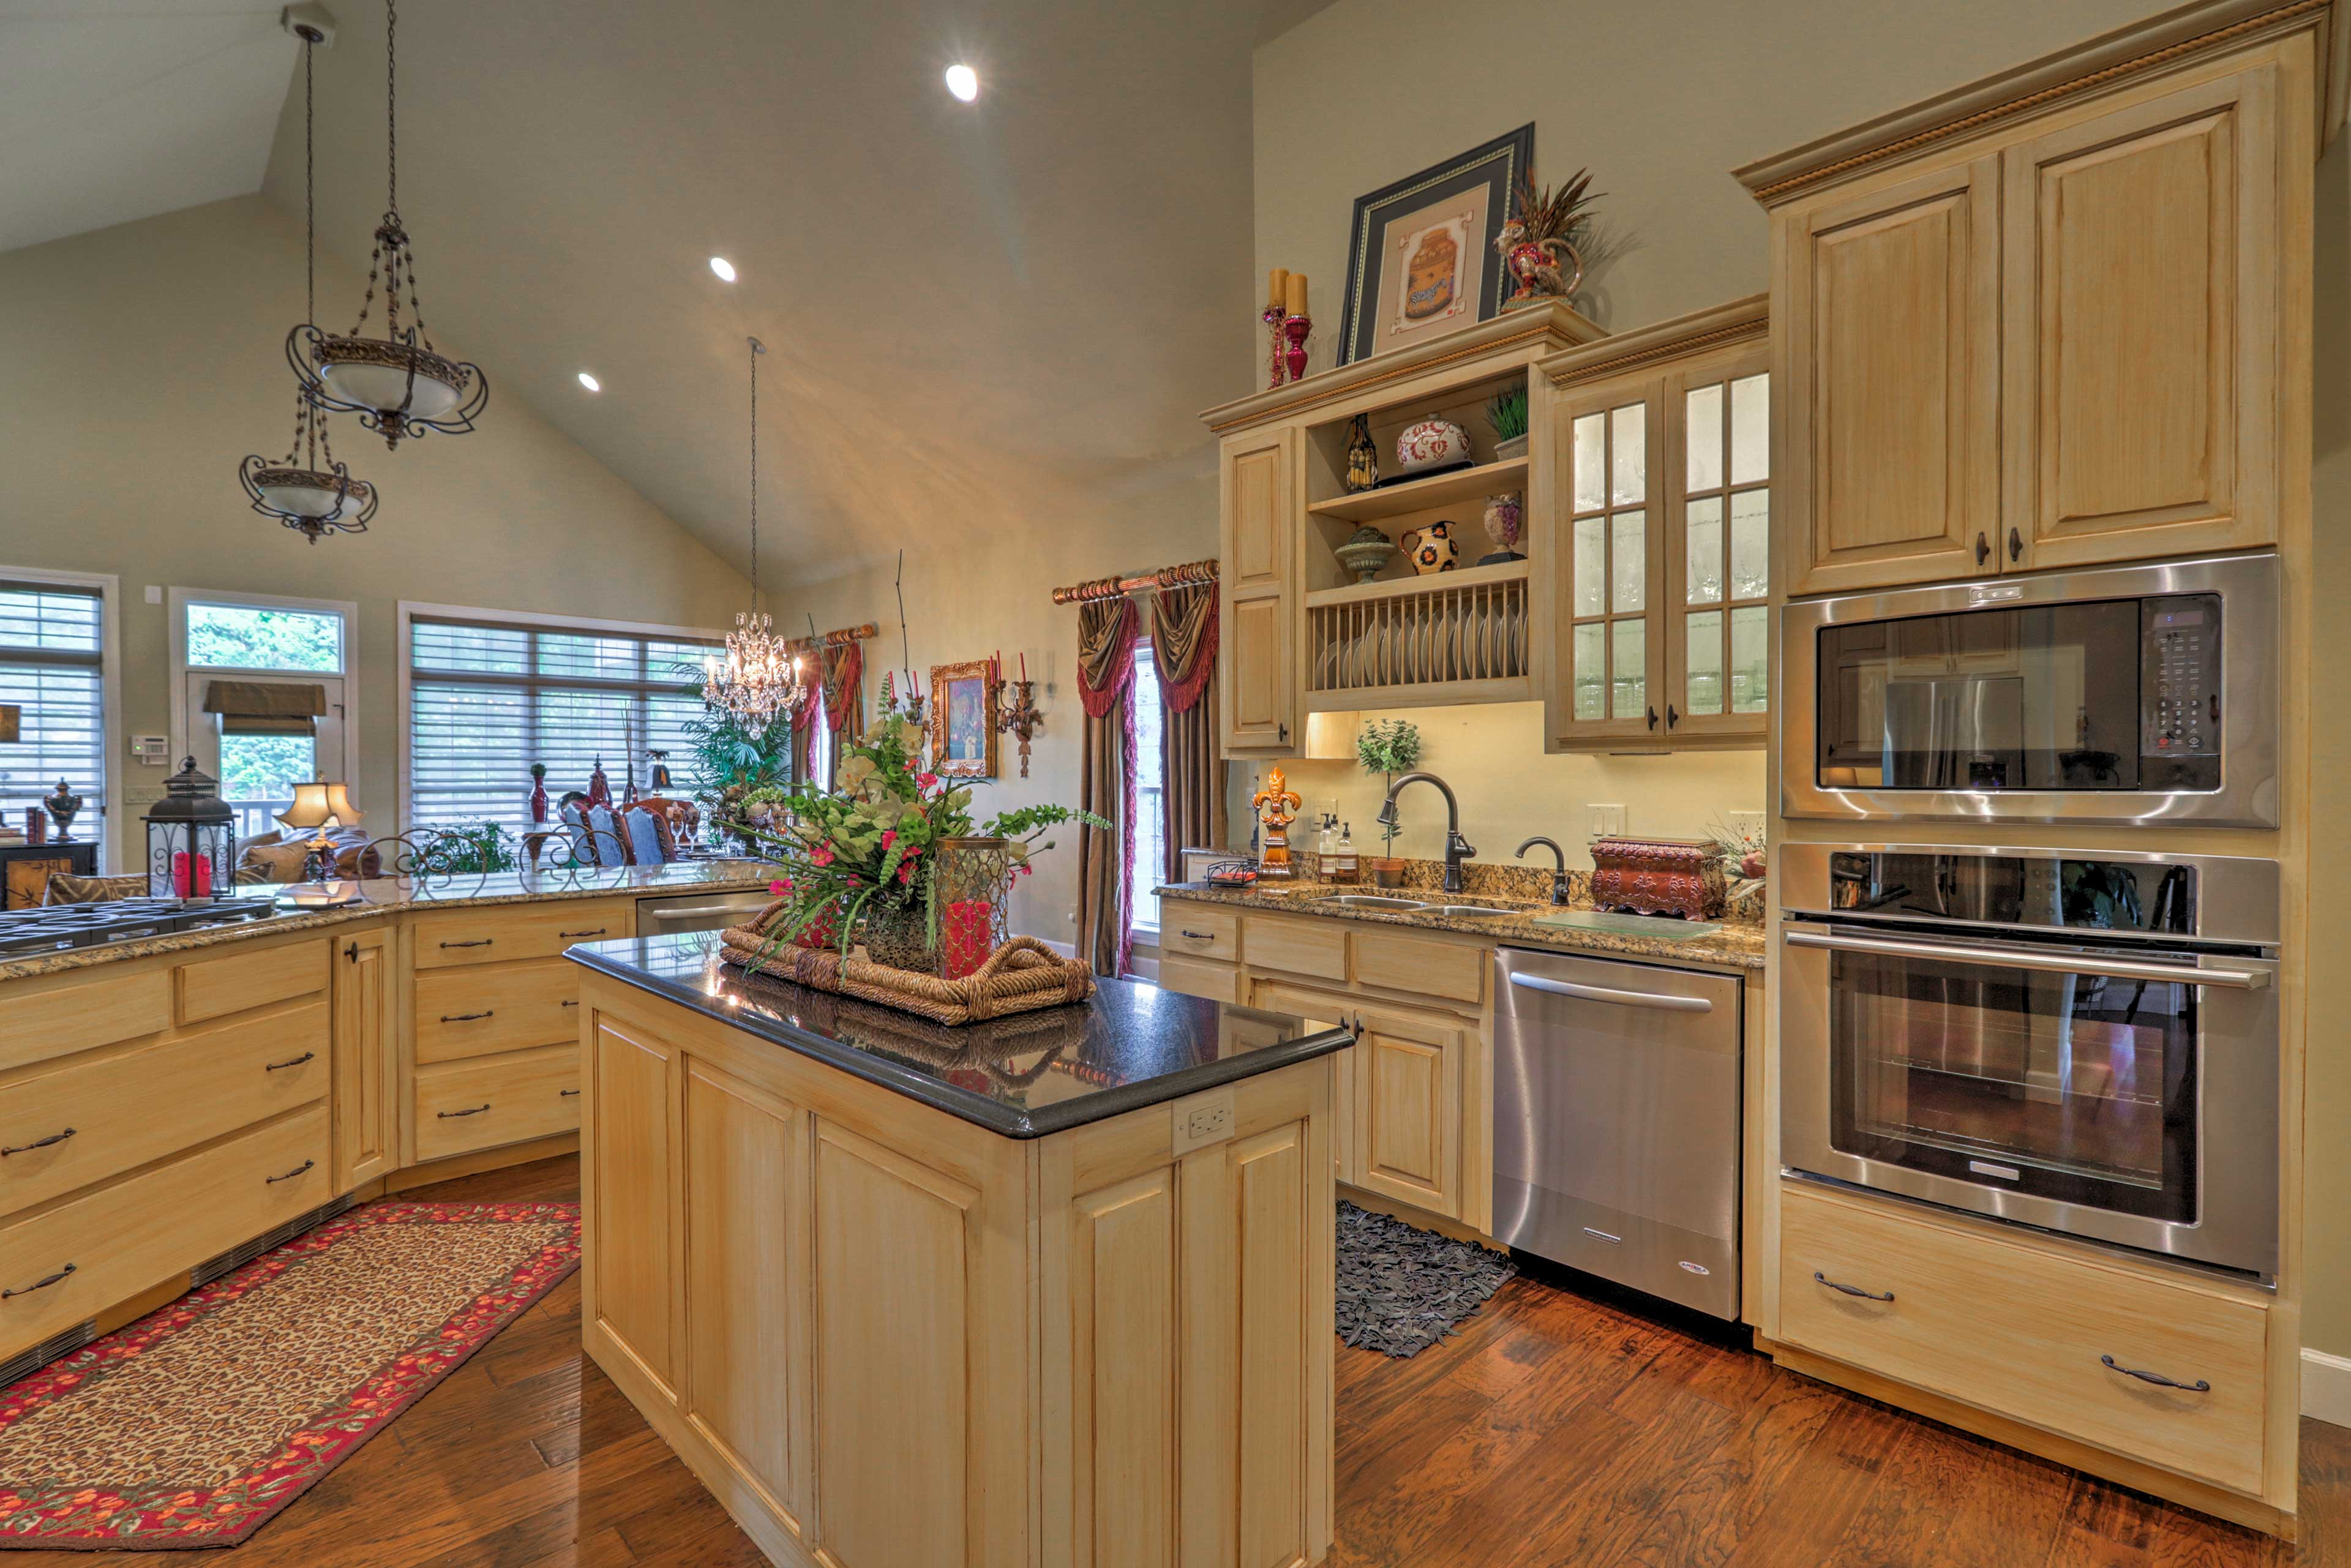 Stainless steel appliances and granite countertops highlight the space.